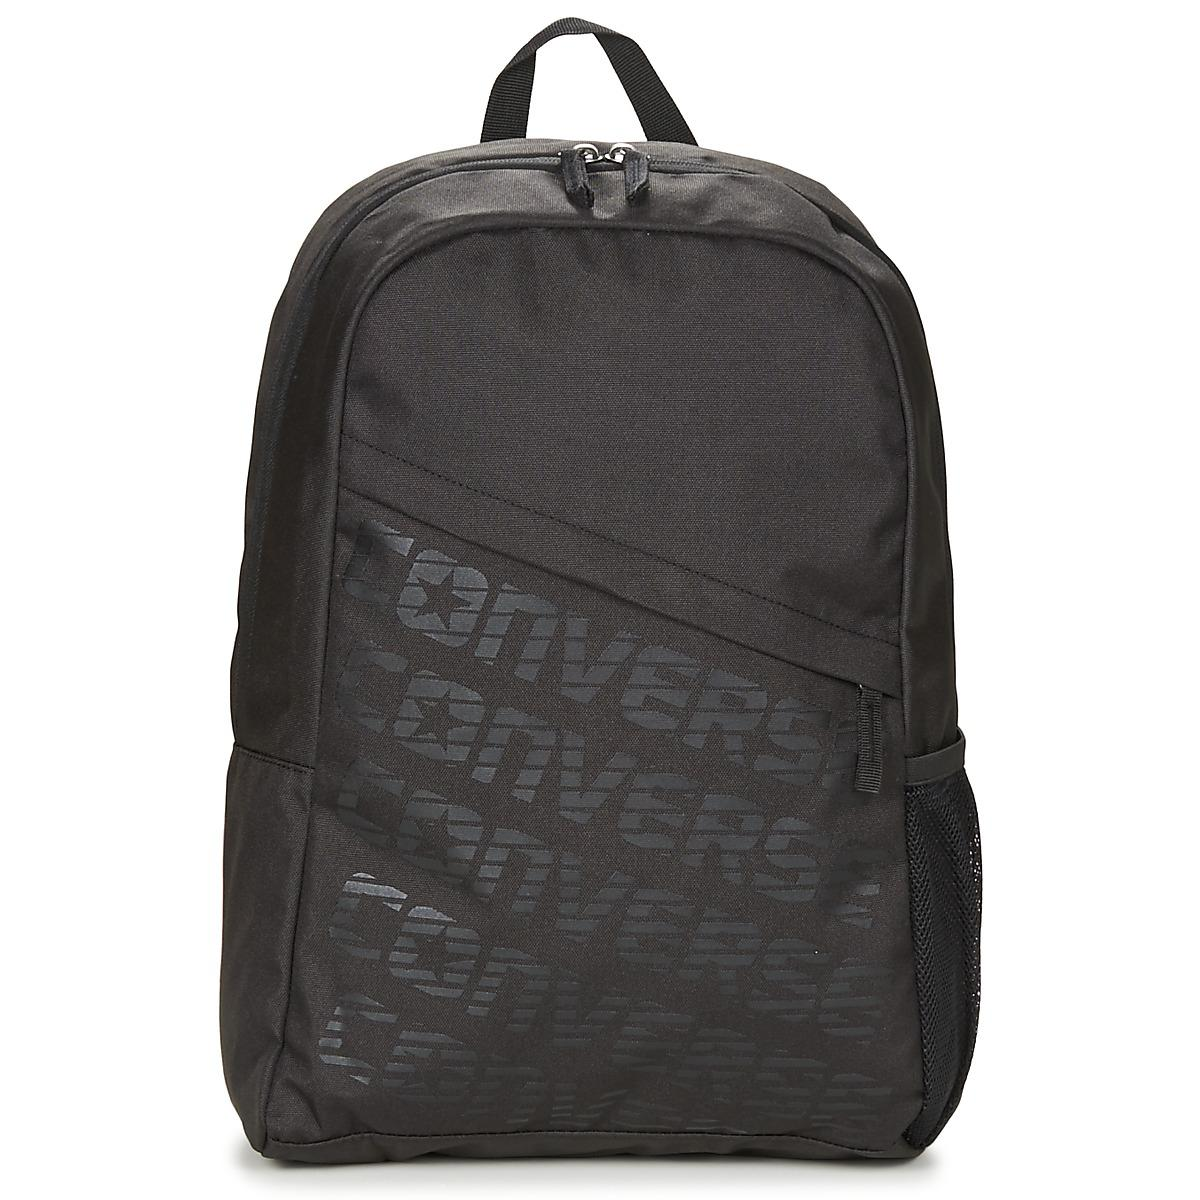 c903f844eb3 Converse Speed Backpack Women s Backpack In Black in Black - Lyst